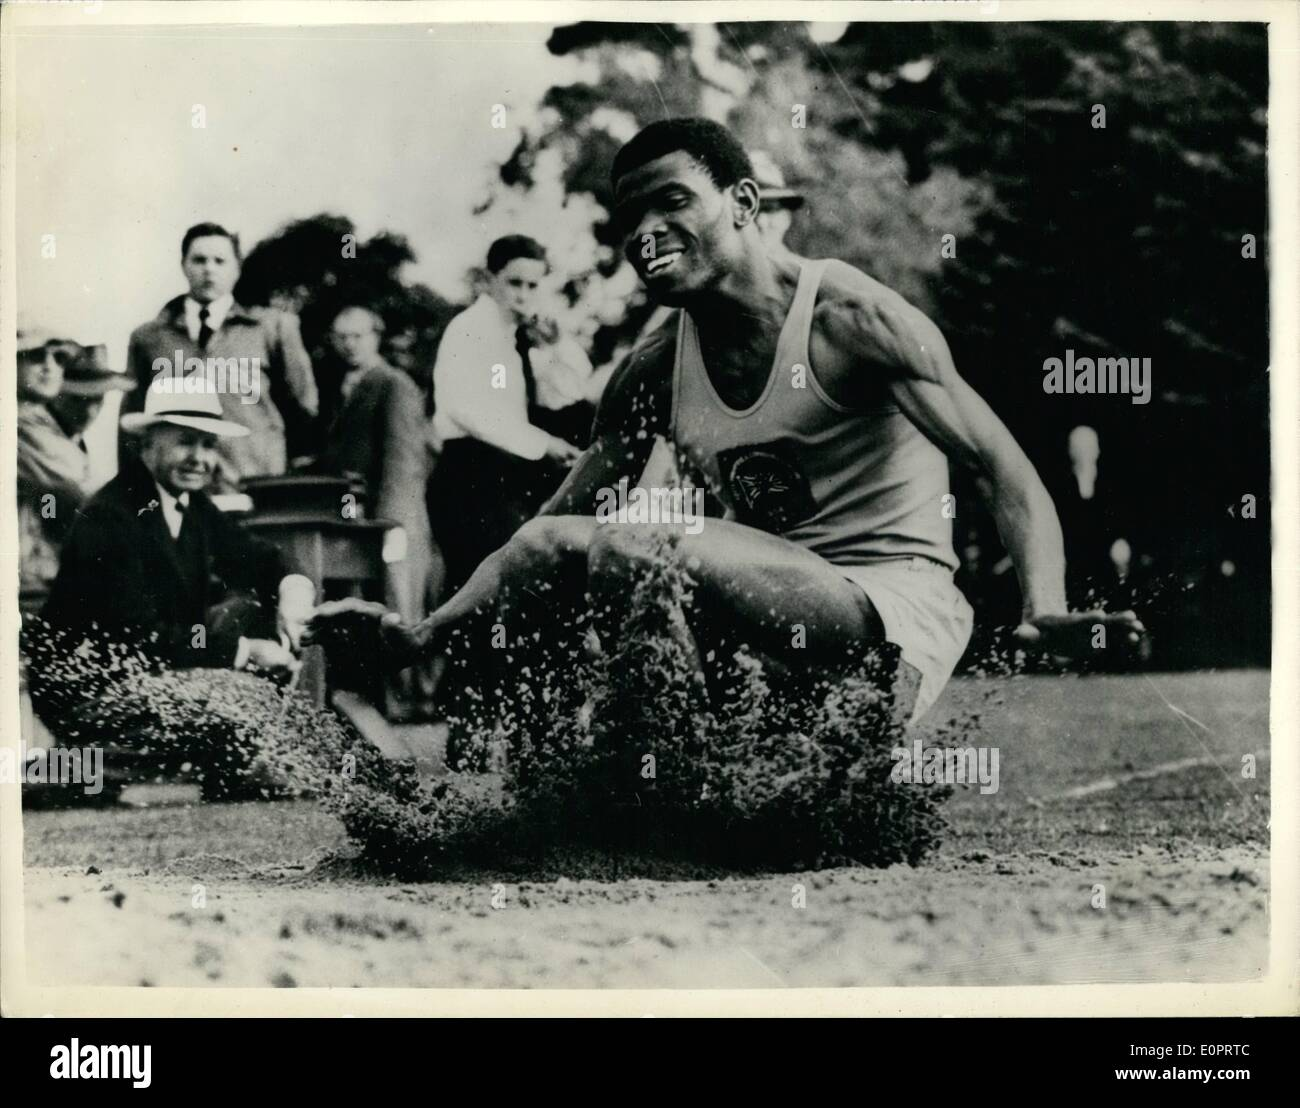 Nov. 11, 1956 - The Happy Athlete from Nigeria. Peter Esirt jumps over Seven Metres - at Melbourne: In a very happy mood is Nigerian Long Jumper Peter Esiri - landing during training at Melbourne for the Olympic Games. Peter jumps over Seven Metres - with ease. - Stock Image